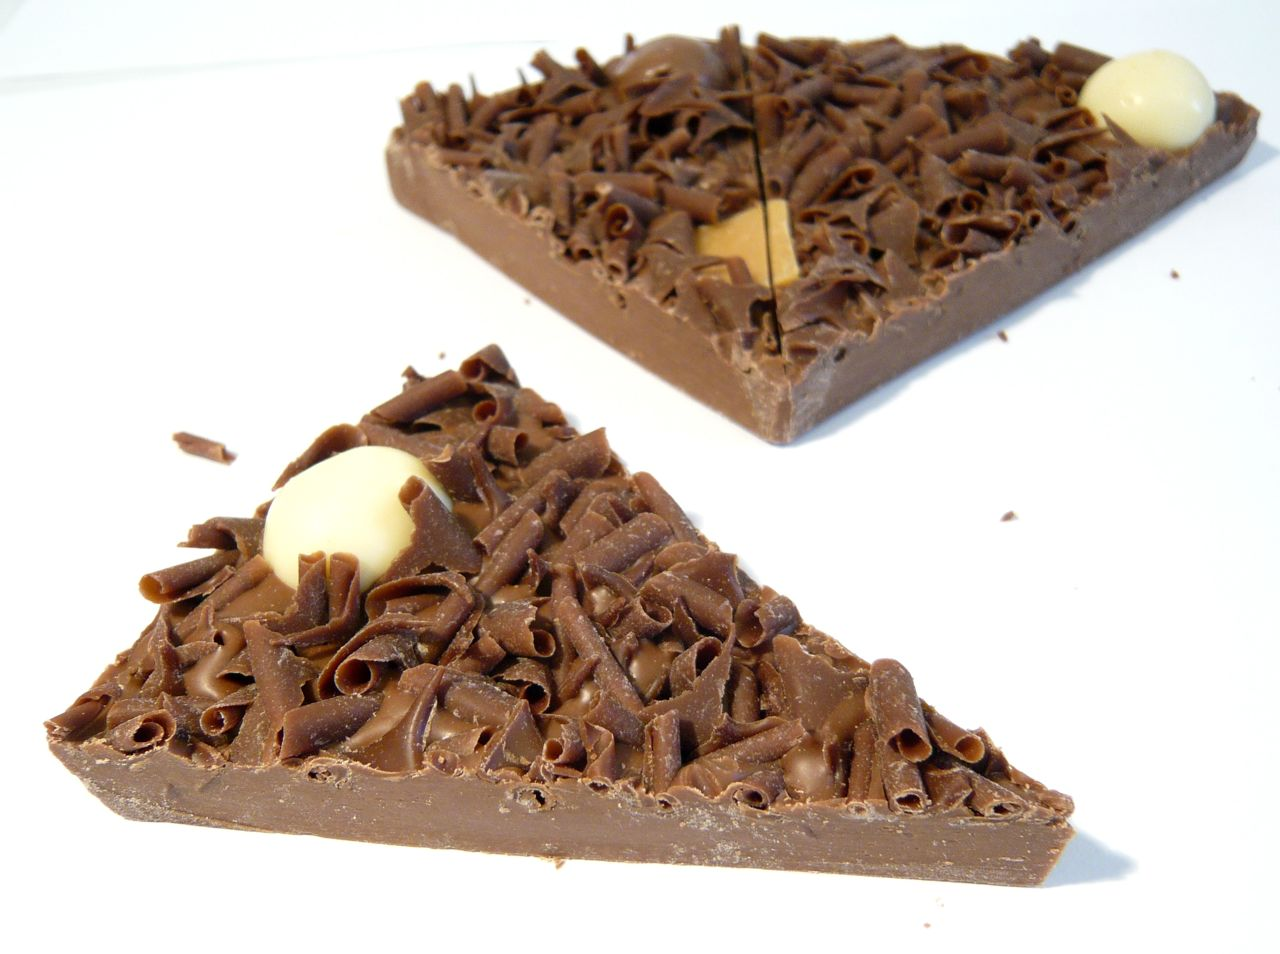 Chocolate Pizza - Home | Facebook